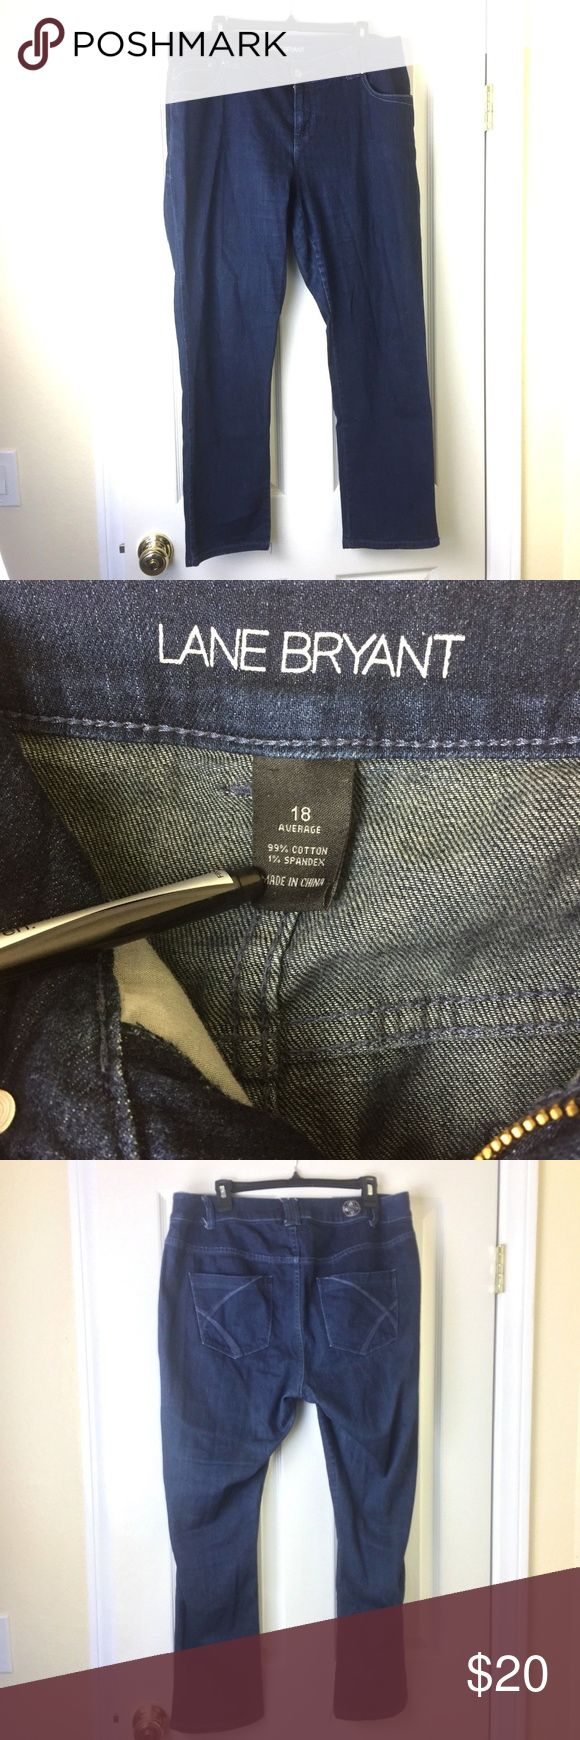 """Lane Bryant Women's Straight Stretch Jeans 18 Lane Bryant Women's Skinny Straight Jeans Stretch Denim Dark Blue Plus Size 18  In Great Pre-Owned Condition with no major flaws. No rips or stains. Please refer to the pictures for more condition info.  Approximate Measurements: (were taken with item laying flat and relaxed)  Waist - 37""""  Inseam - 29""""  Rise - 10"""" Bottom of pant leg opening - 8""""   Description: * Skinny Straight Jeans * Dark Blue Denim * Zipper front with button closure  * 5…"""